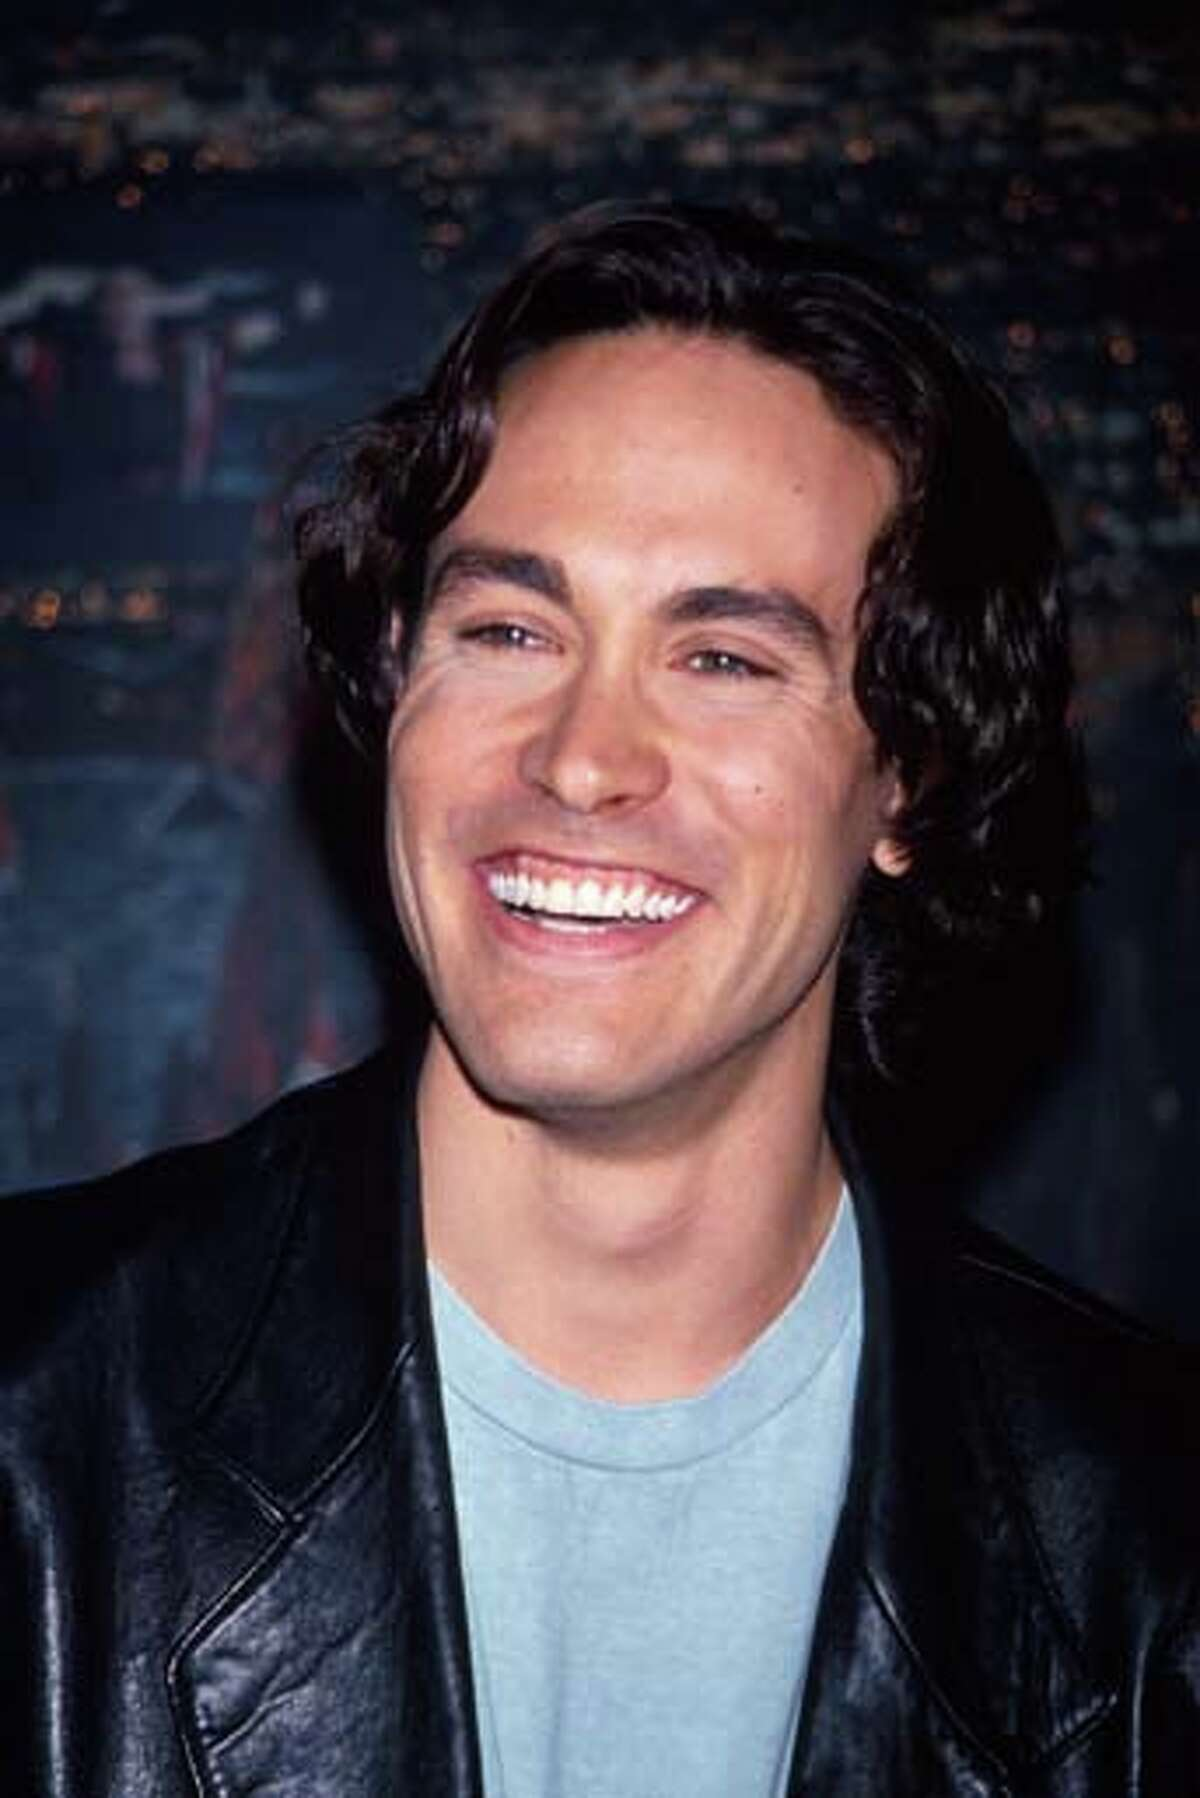 Actor Brandon Lee suffered an untimely death in 1993. He was killed on set when a gun, thought to be filled with blanks, was loaded with the real deal.